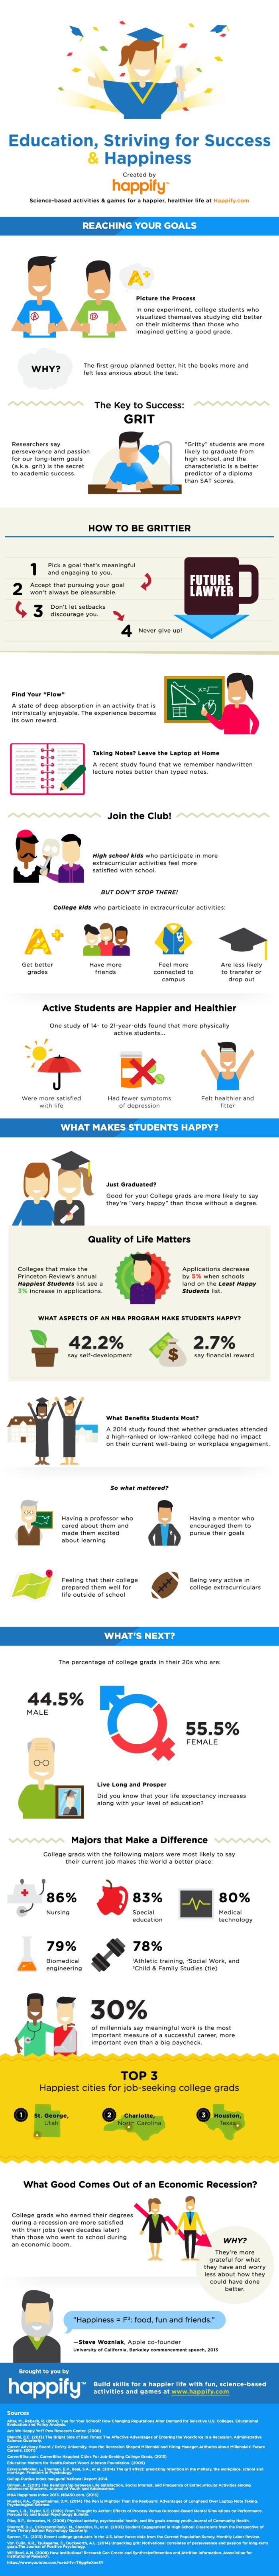 Proof That School Makes You Happier And Healthier (infographic)